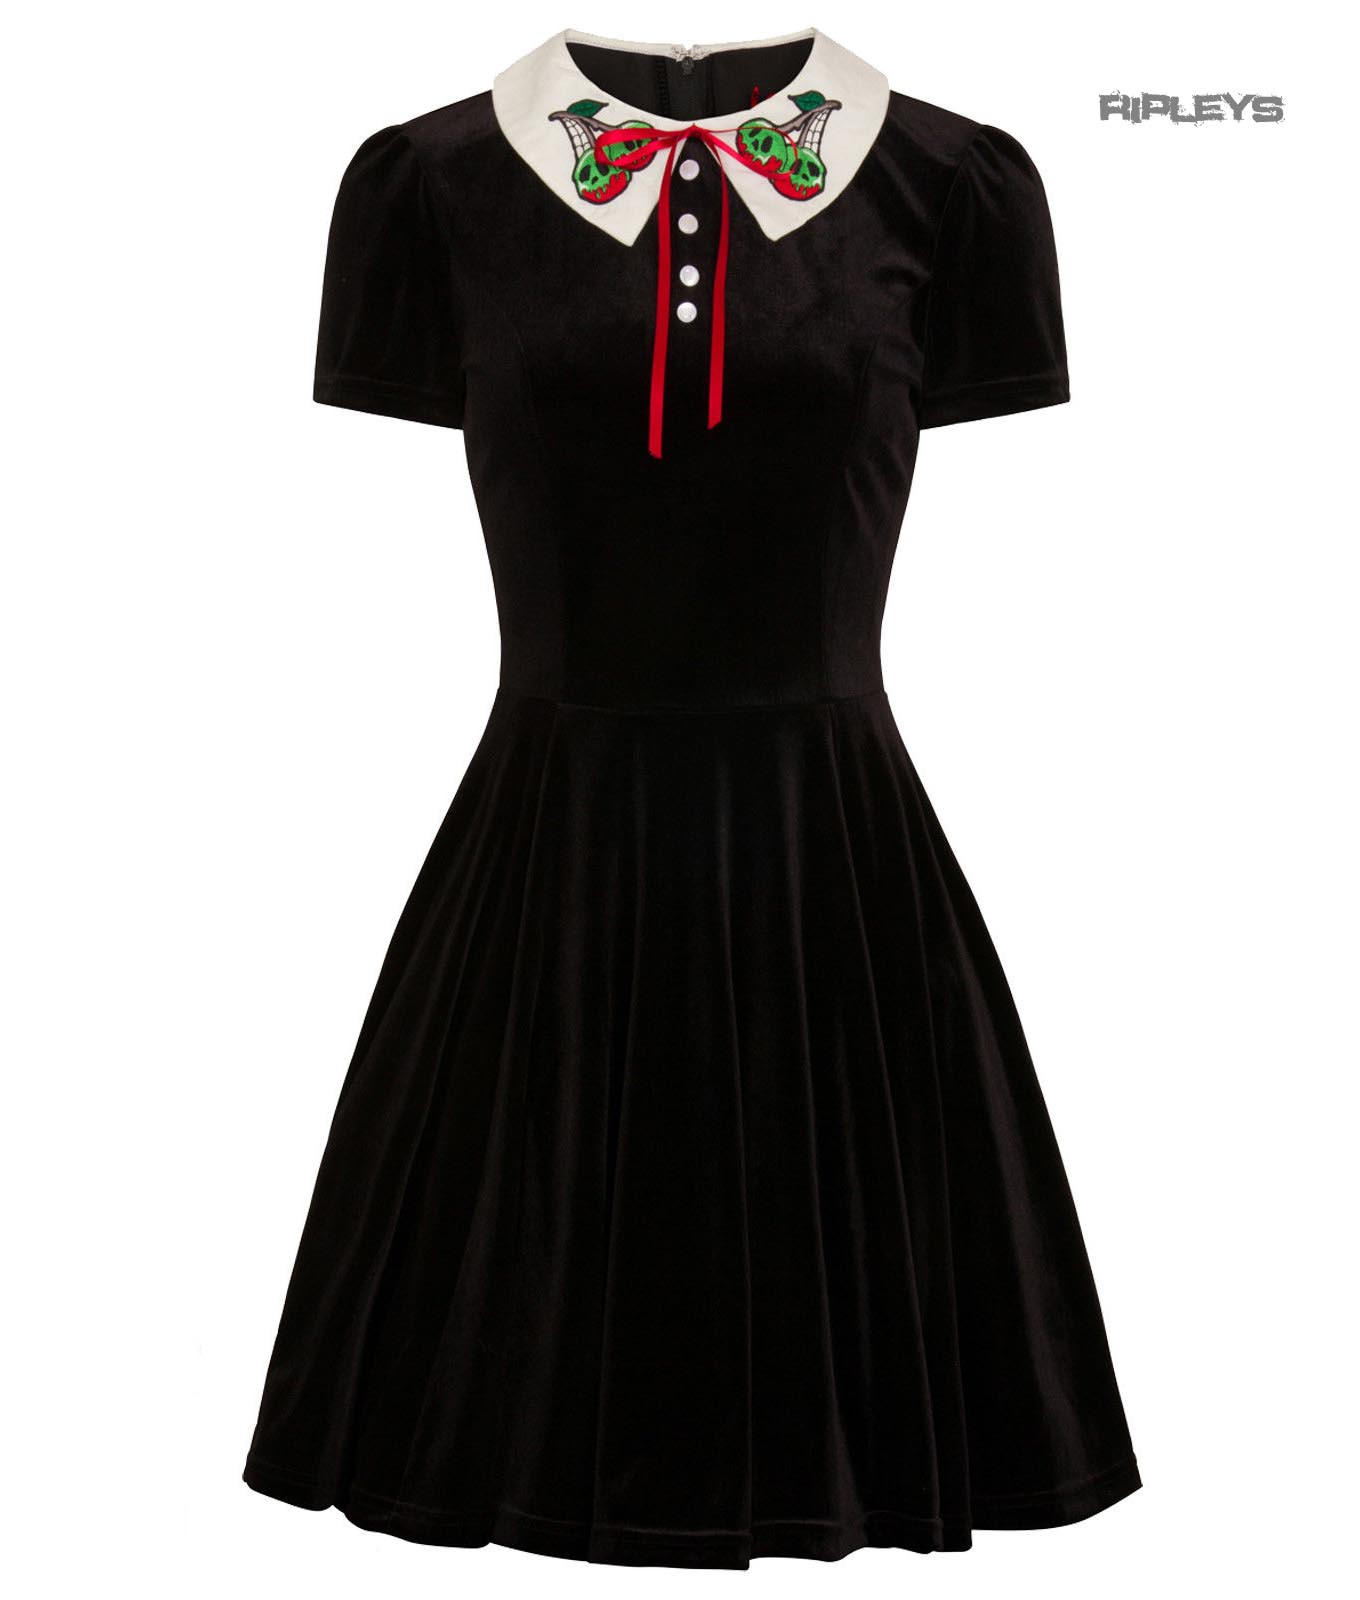 Hell-Bunny-Goth-Mini-Skater-Dress-NIGHTSHADE-Poison-Cherry-Black-Velvet-All-Size thumbnail 14